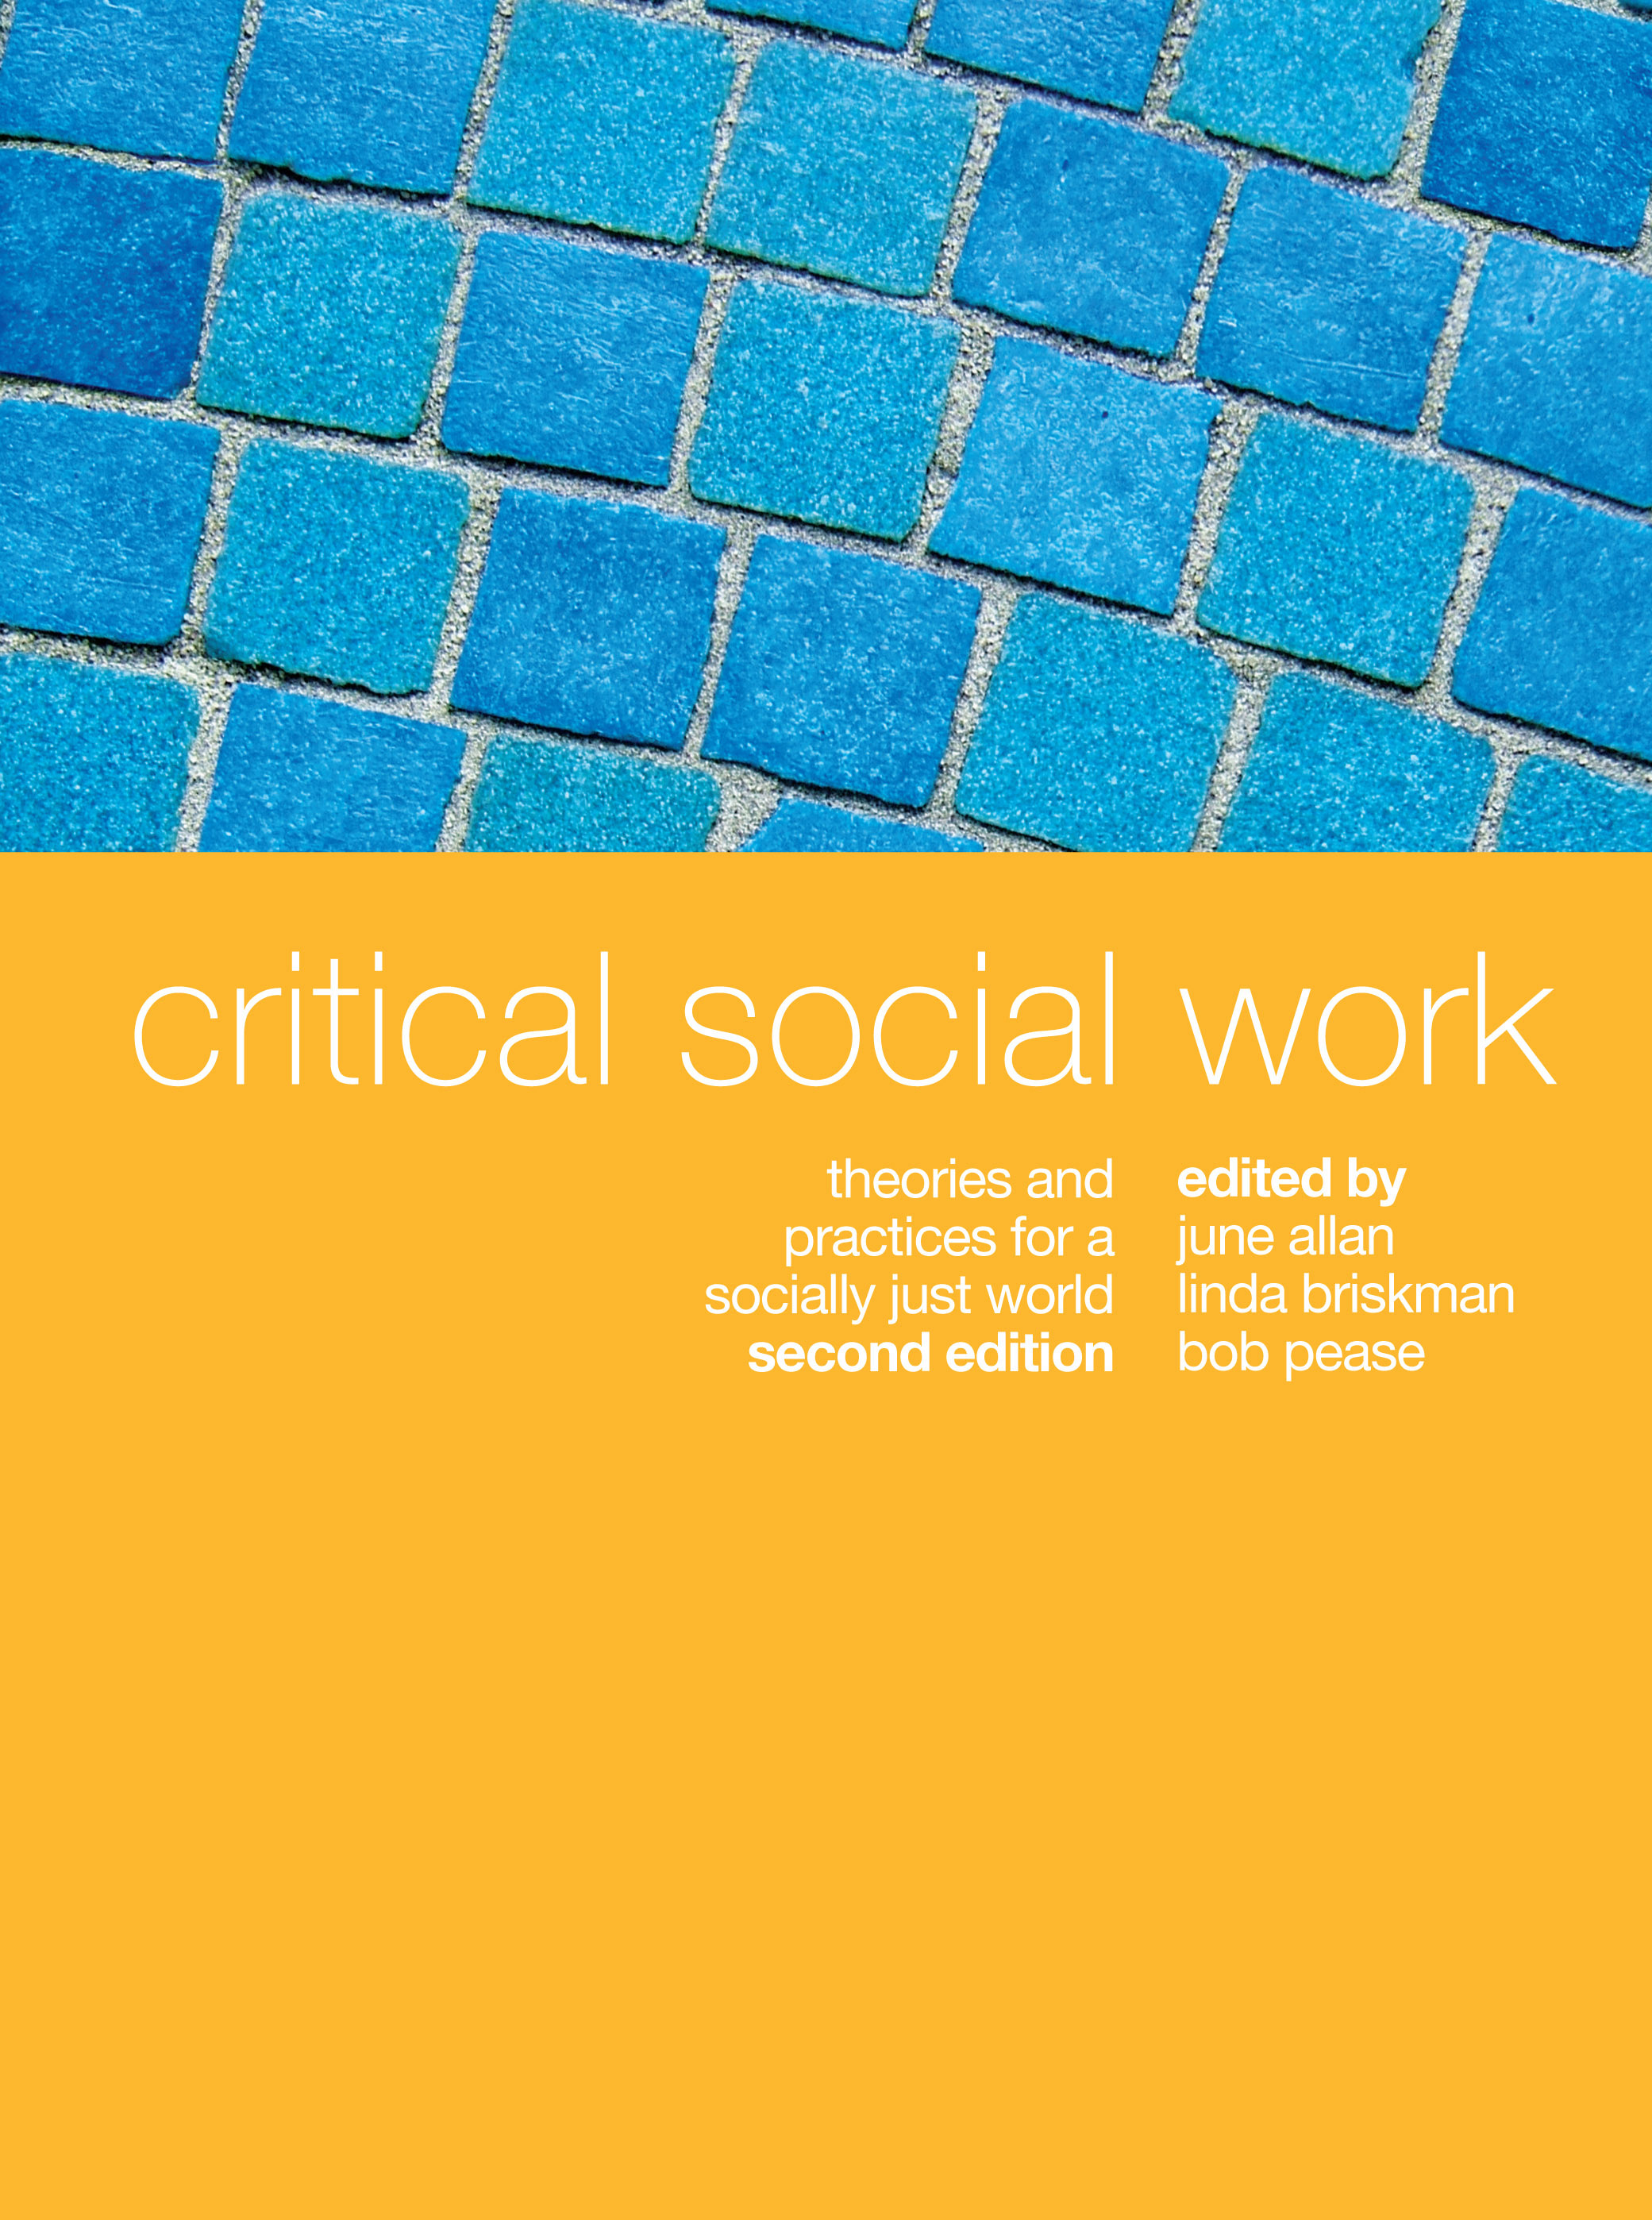 critical thinking and professional judgement for social work A very good resource with some very well presented,accessible and useful examples in relation to key concepts explored to help students with previous social work experience to develop critical thinking skillsit provides a rich resource for continuous professional development.